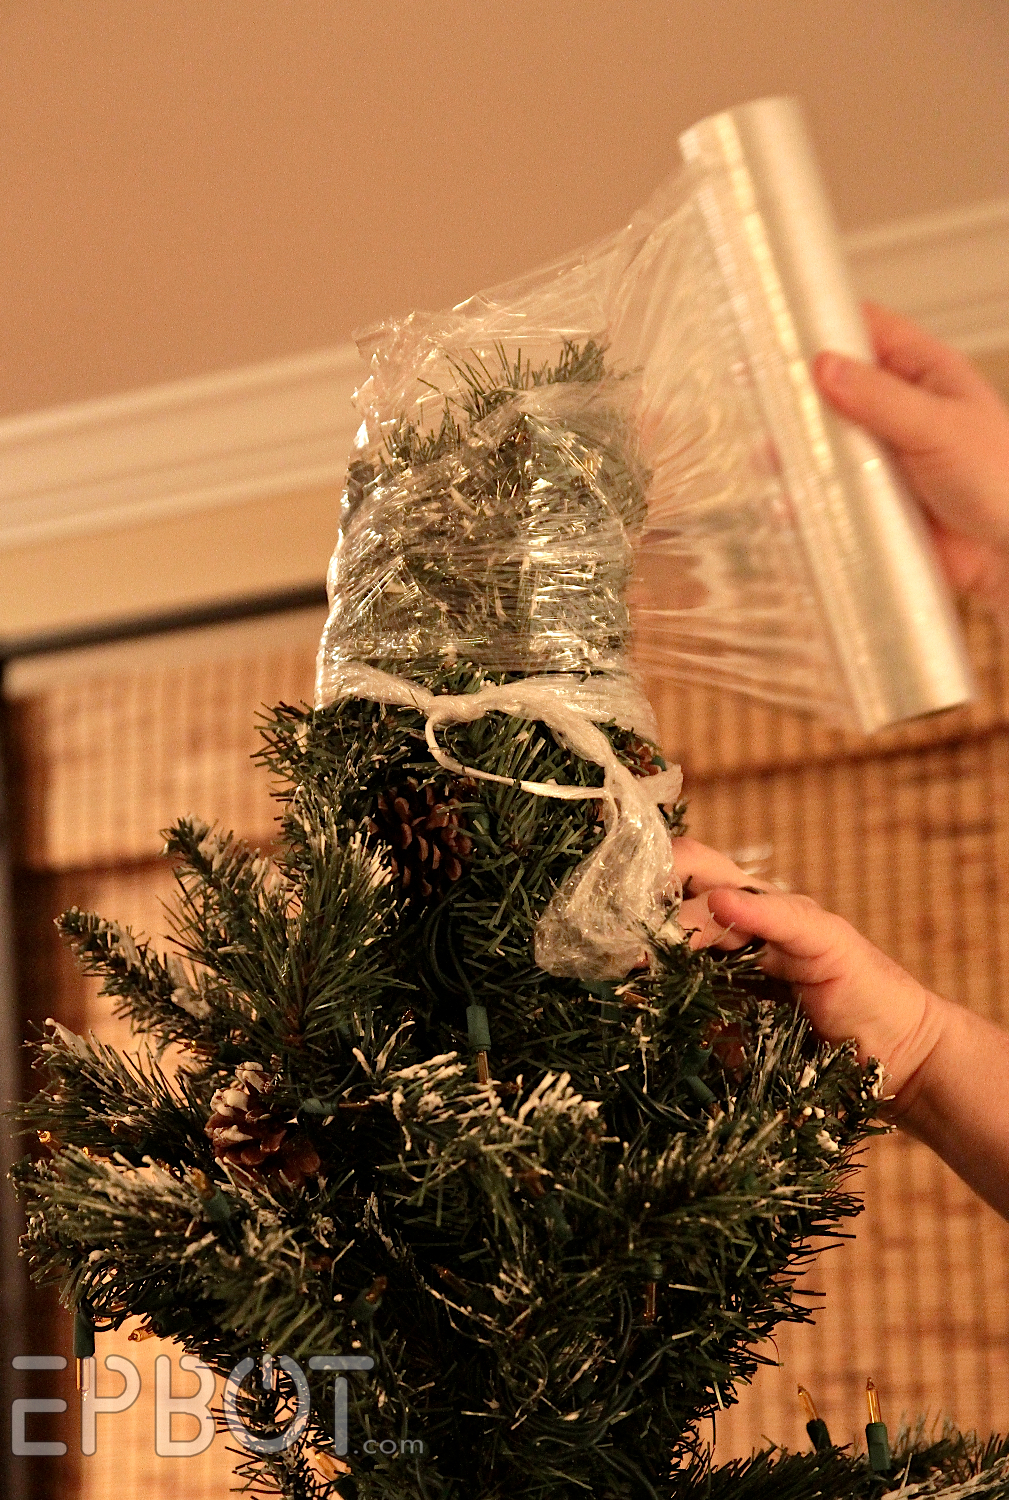 Epbot how to shrink wrap your christmas tree for fun